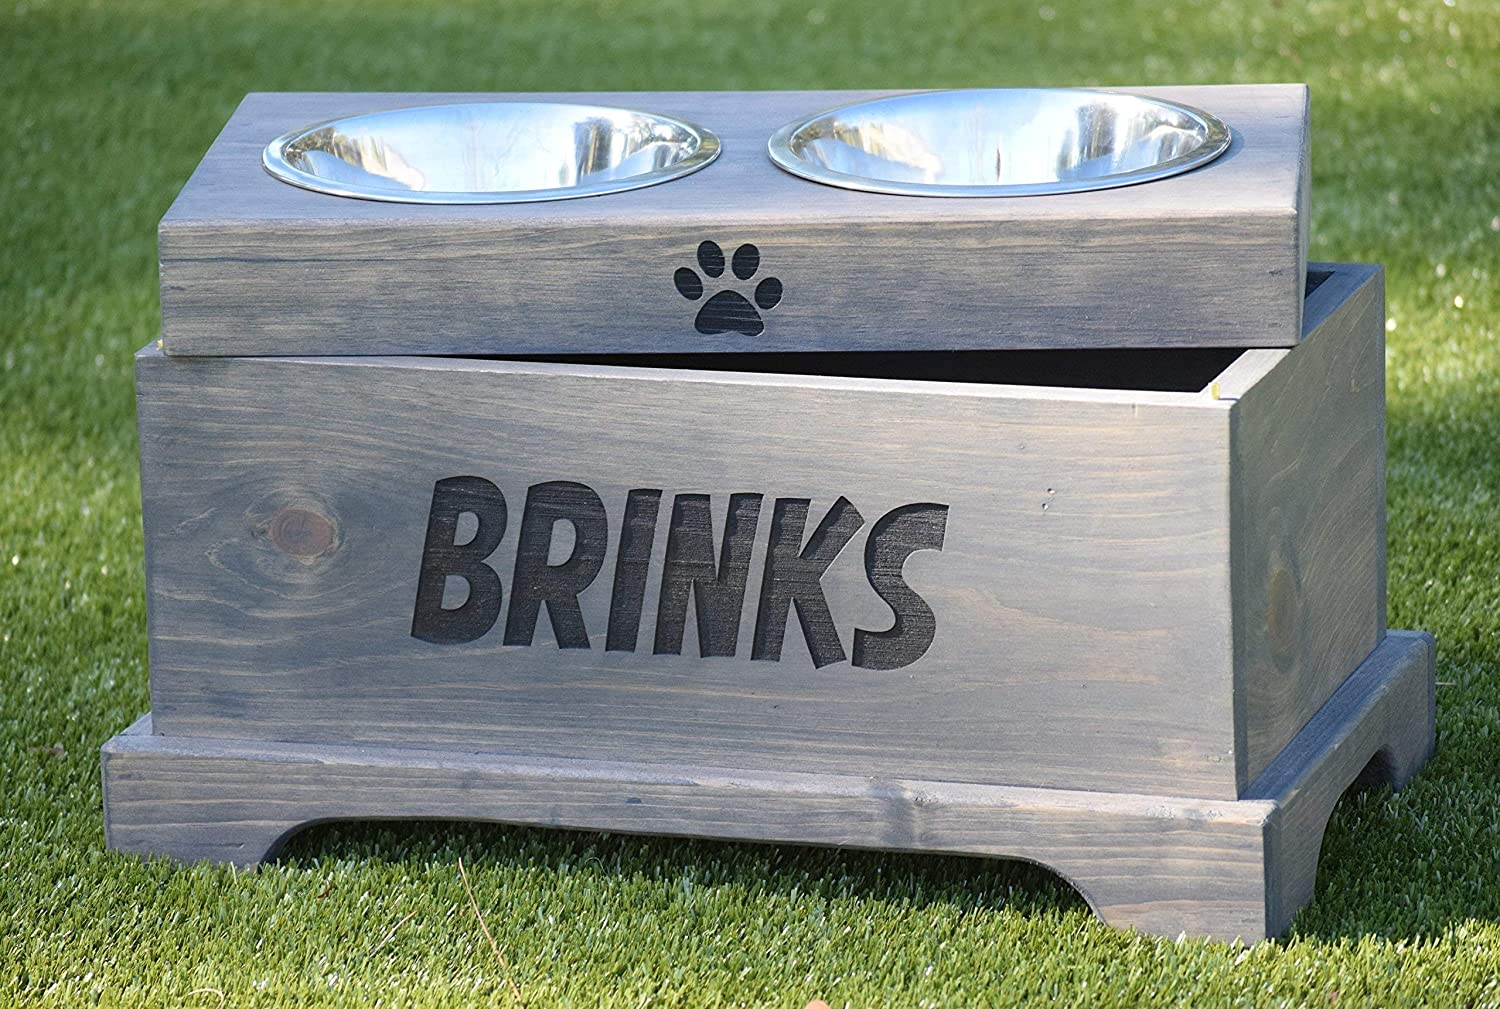 Pet Bowl Stand Elevated Dog Bowl Elevated Dog Feeder and Storage Box Rustic Dog Bowl Stand Raised Dog Feeder Raised Dog Bowl